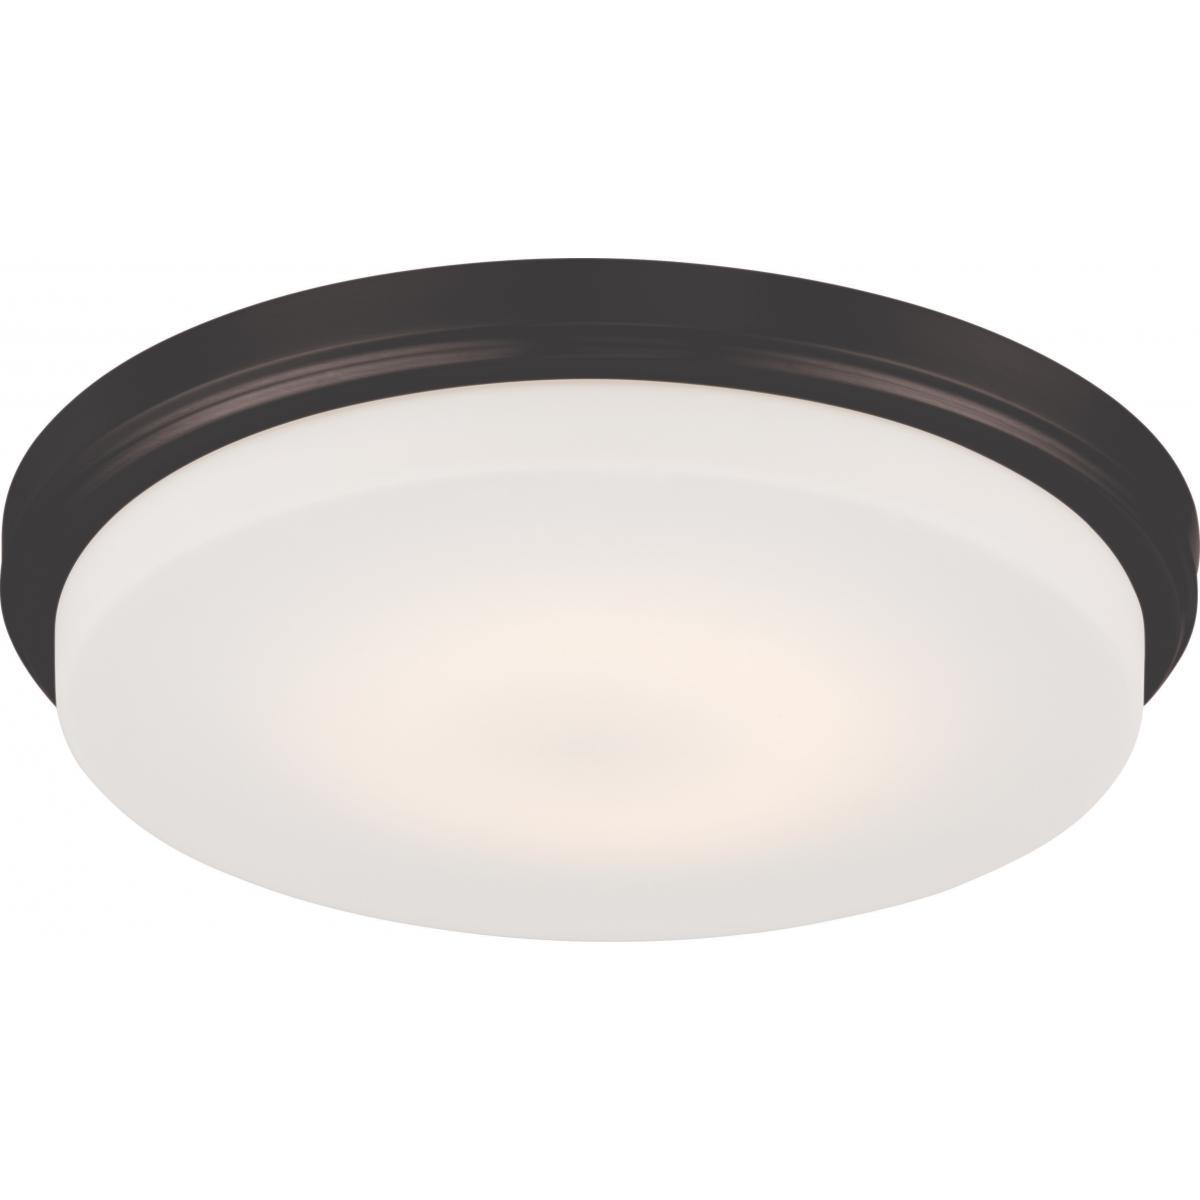 Dale LED Flush Fixture with Opal Frosted Glass Ceiling Nuvo Lighting Bronze